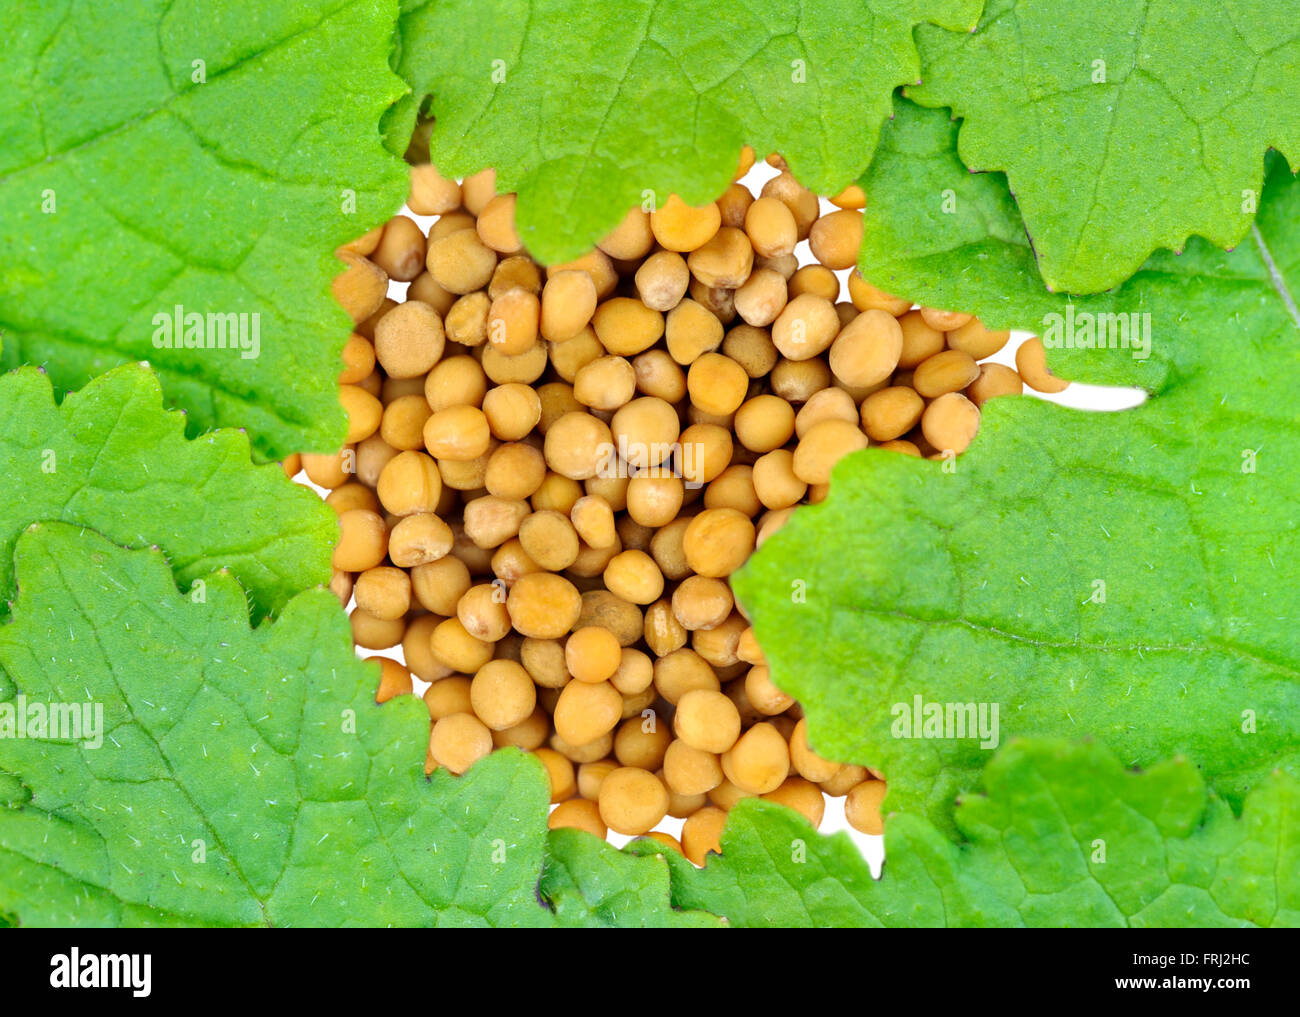 Yellow Mustard seeds and leaves also called White Mustard, Sinapis Alba, Brassica Alba or Brassica Hirta, food ingredients. - Stock Image